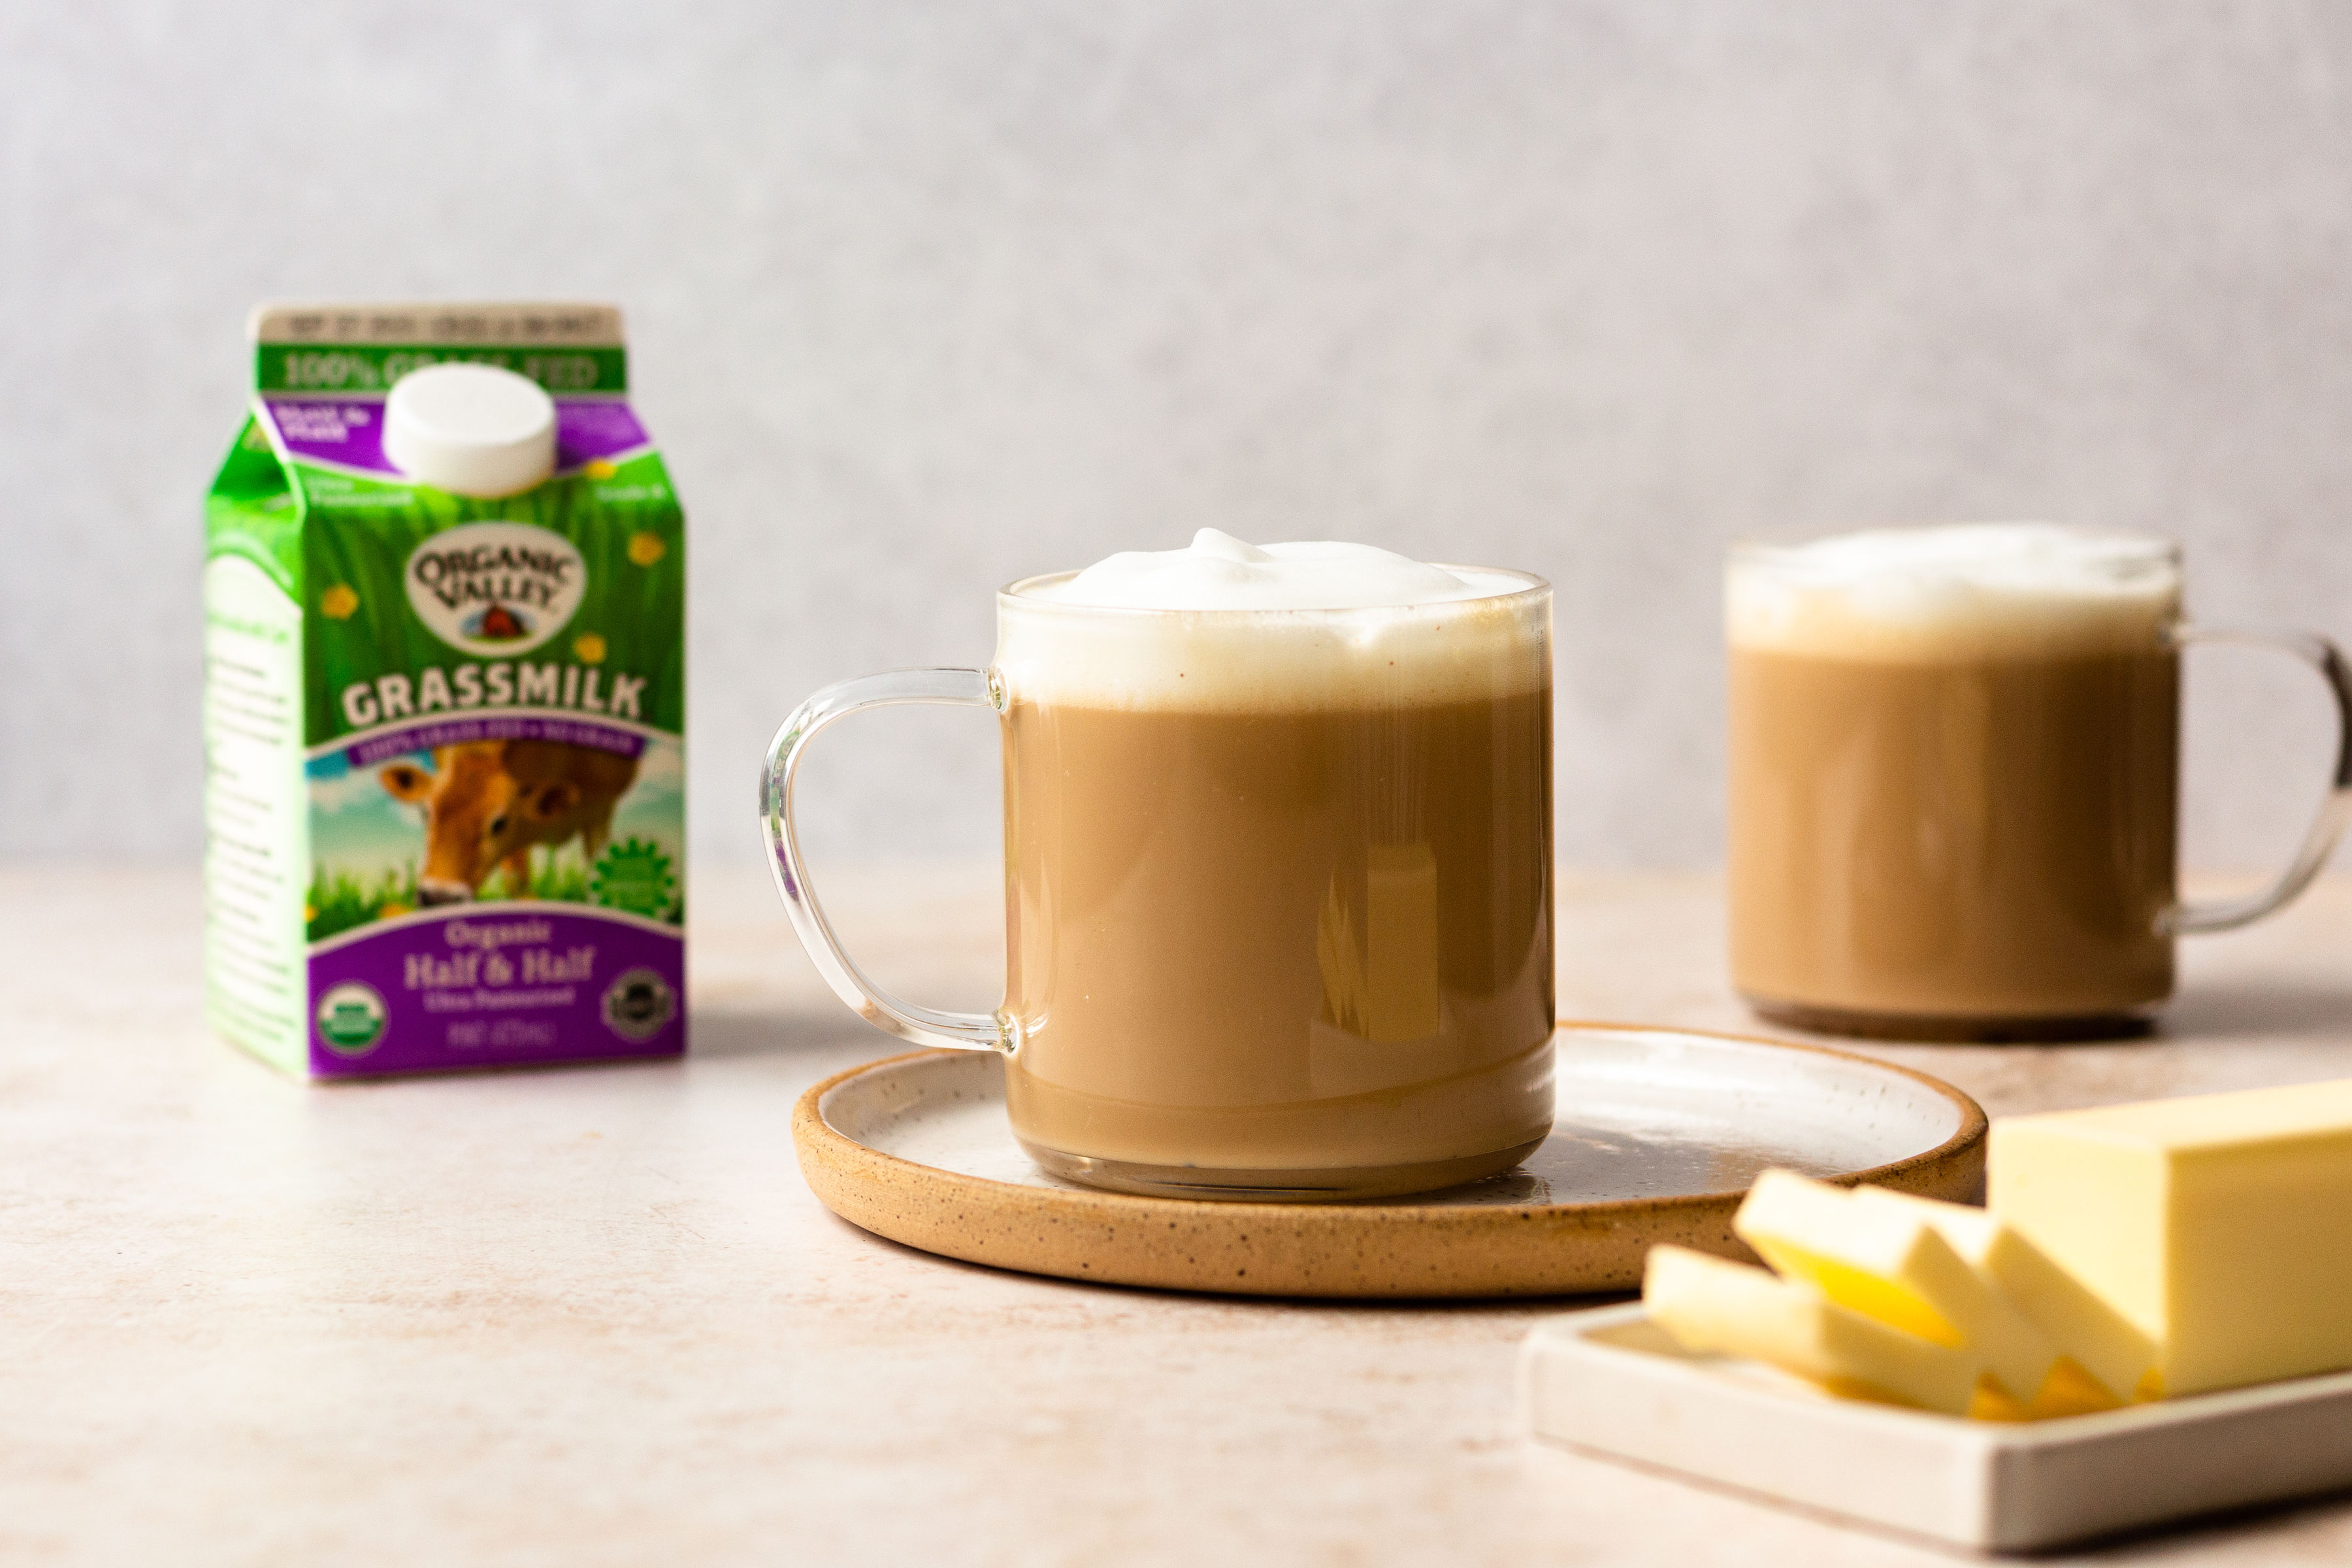 Buttery breve latte with Organic Valley Half & Half.